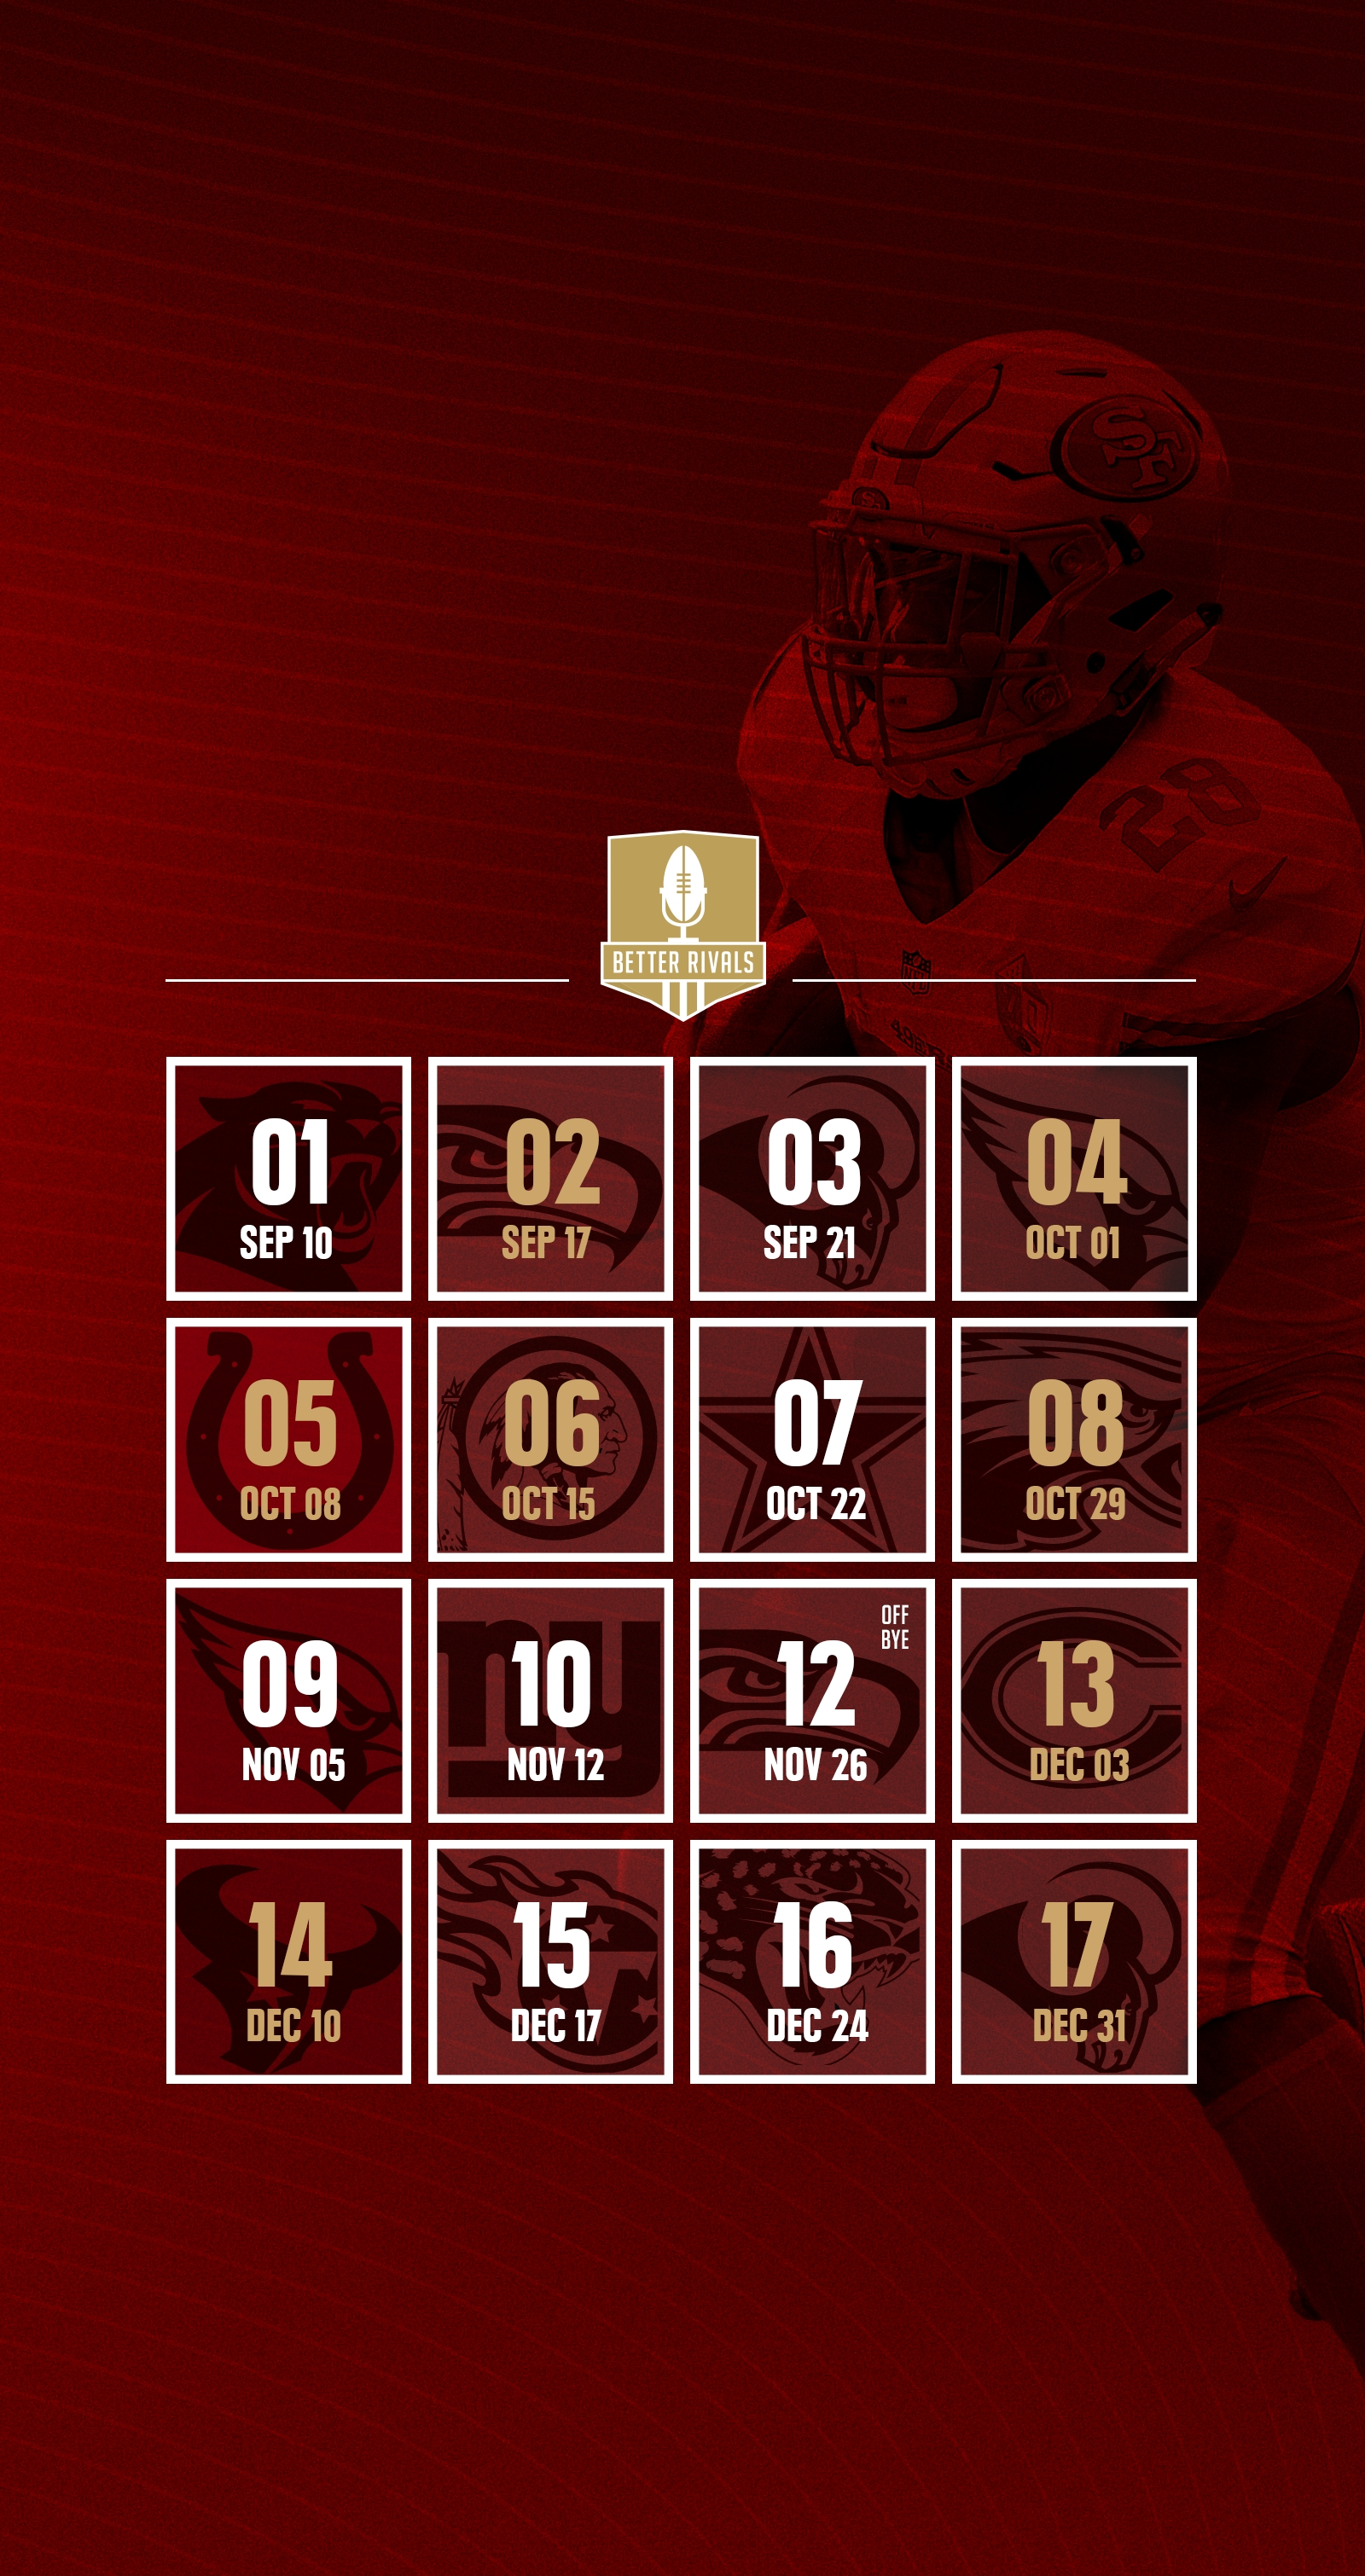 49ers 2017 schedule wallpapers for iphone, android, desktop - niners